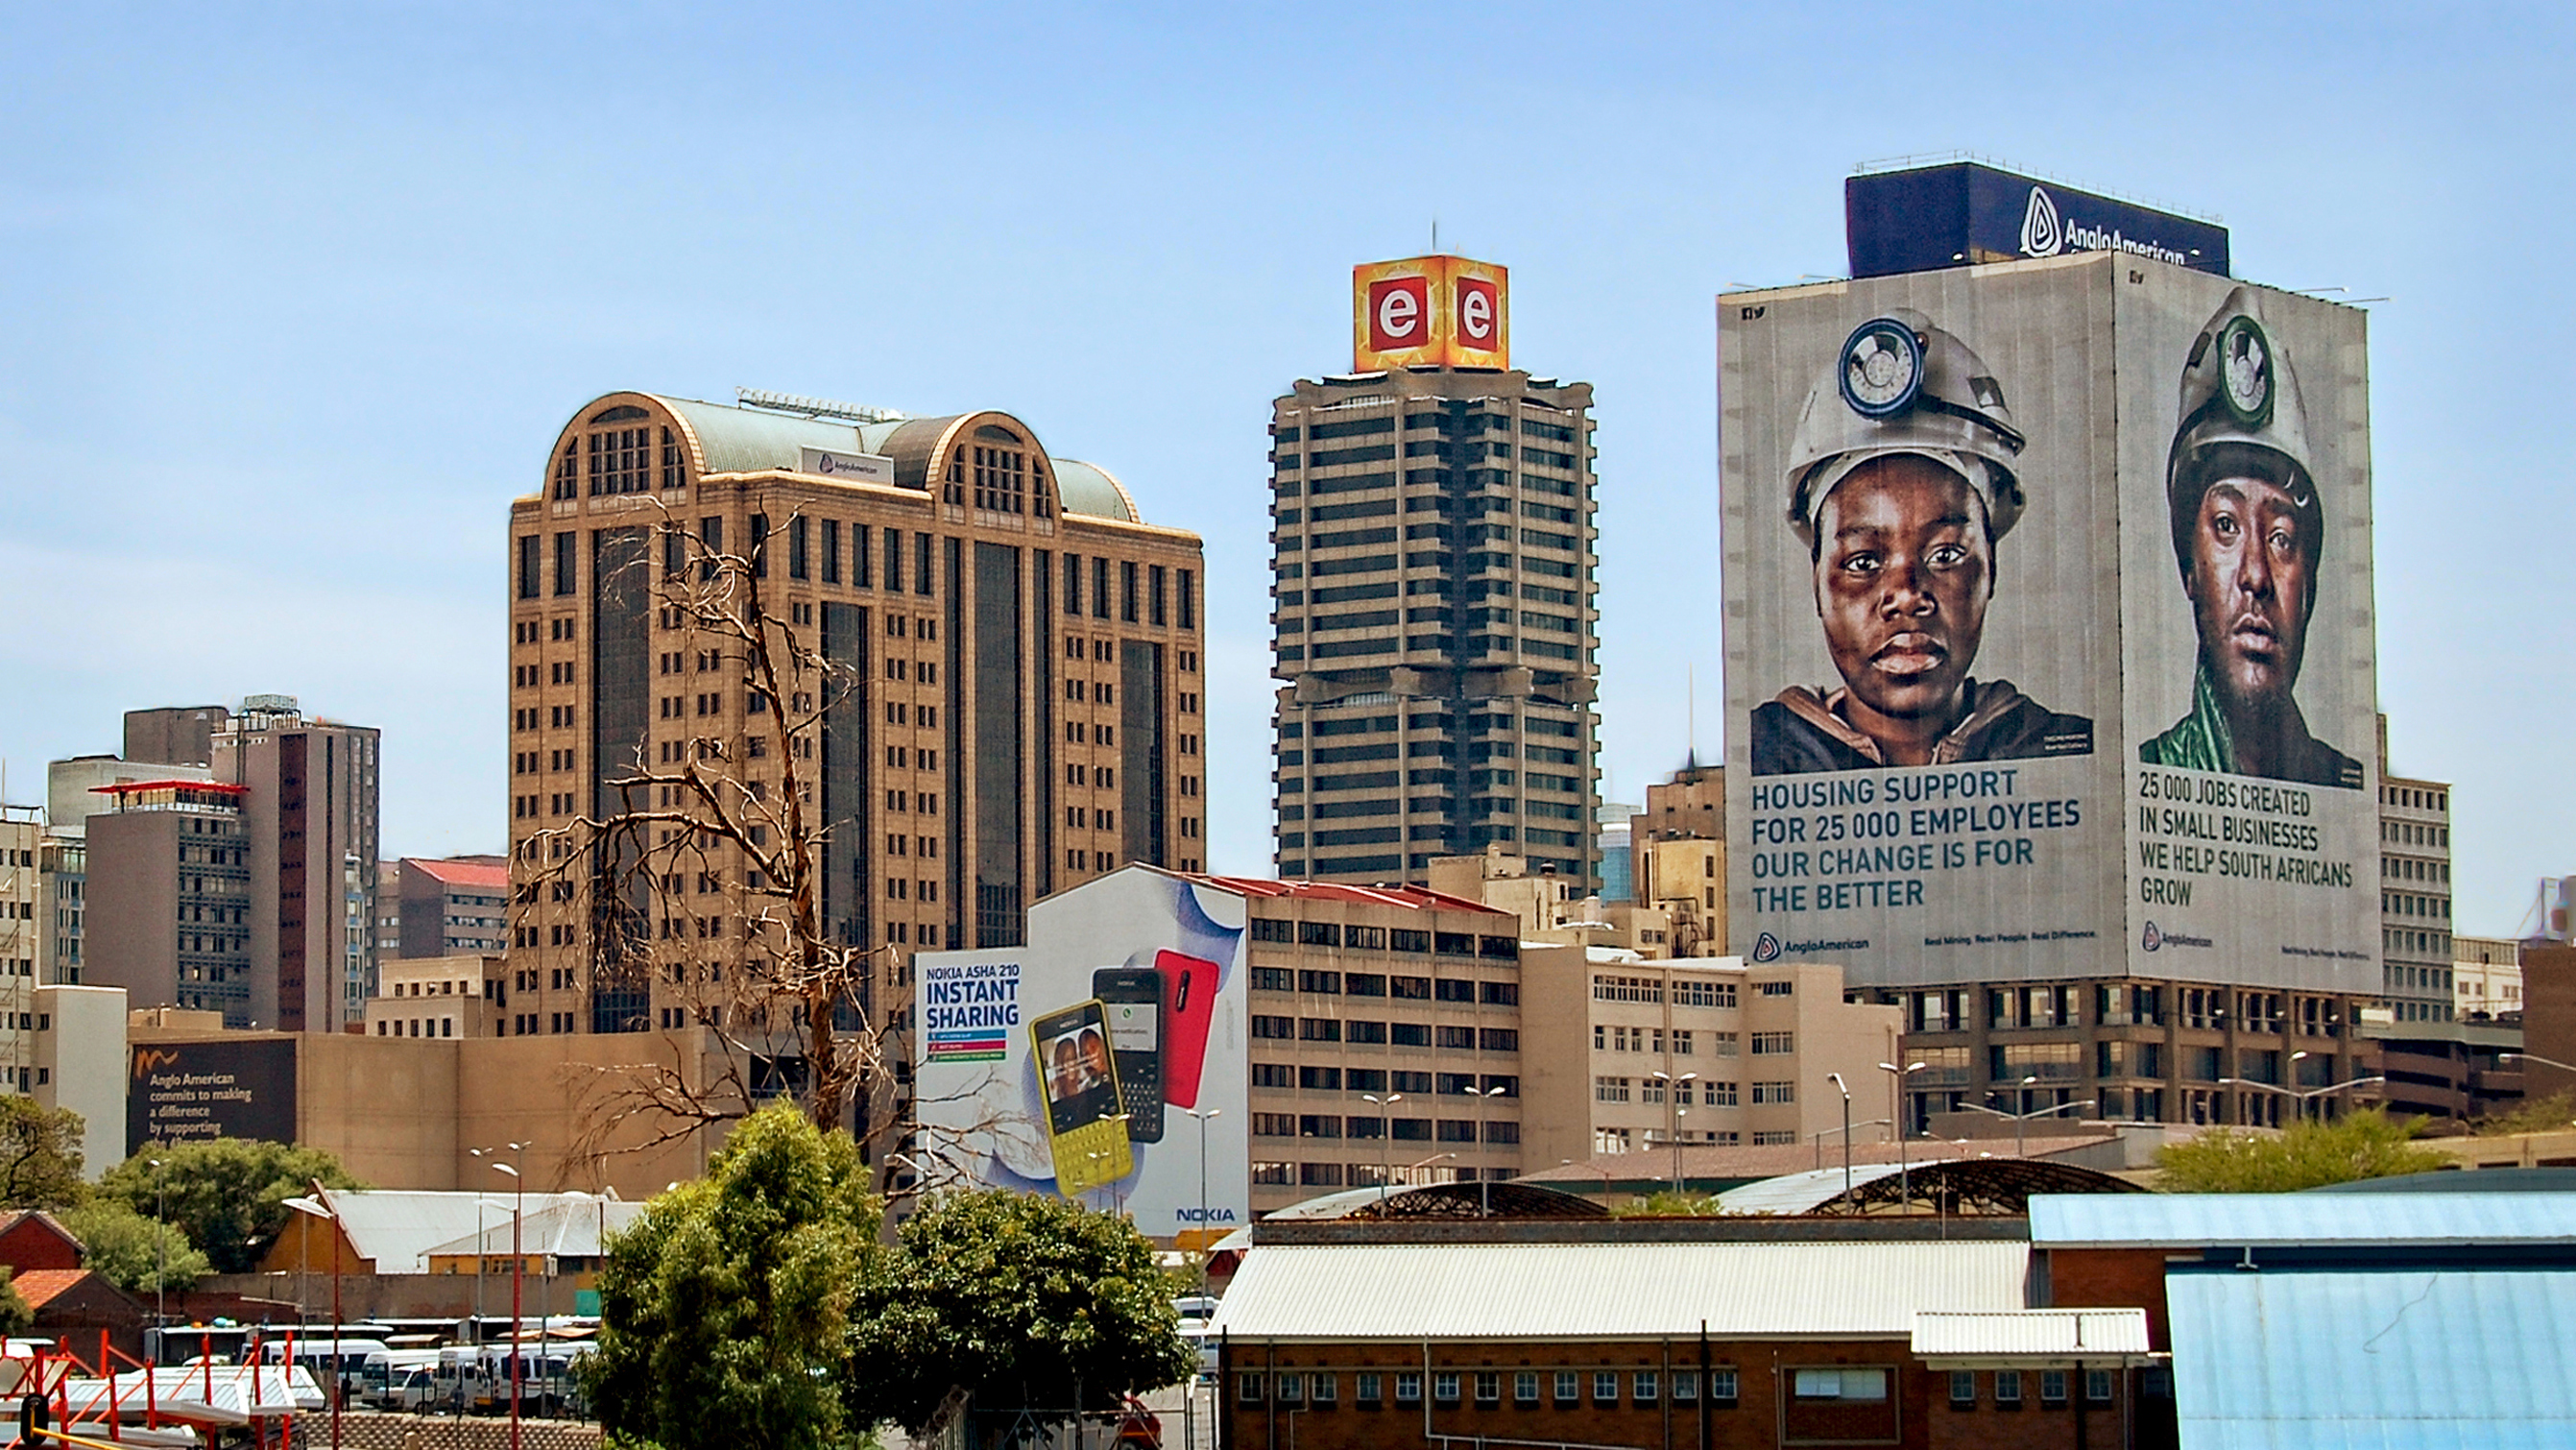 Johannesburg, South Africa - December 21, 2013: Johannesburg began as a gold-mining settlement. Today it is one of the world's leading financial centers, the economic & financial hub of South Africa